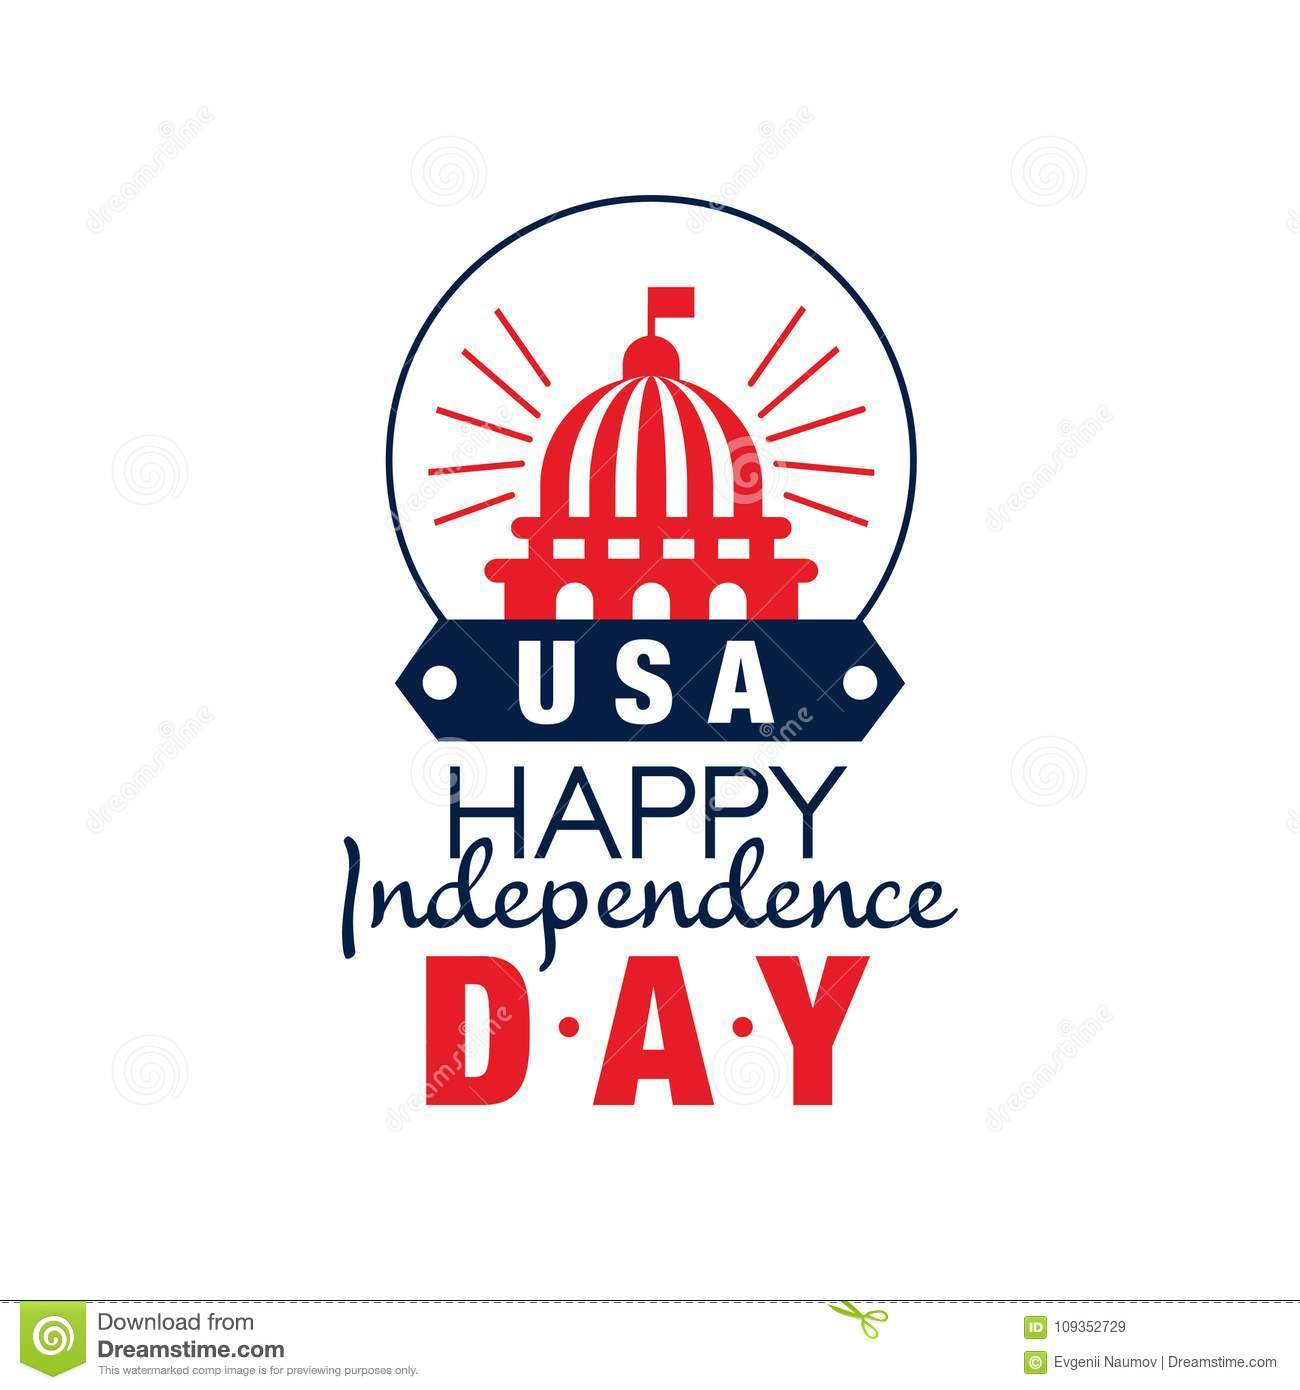 Happy Independence Day Emblem Silhouette Of United States Capitol